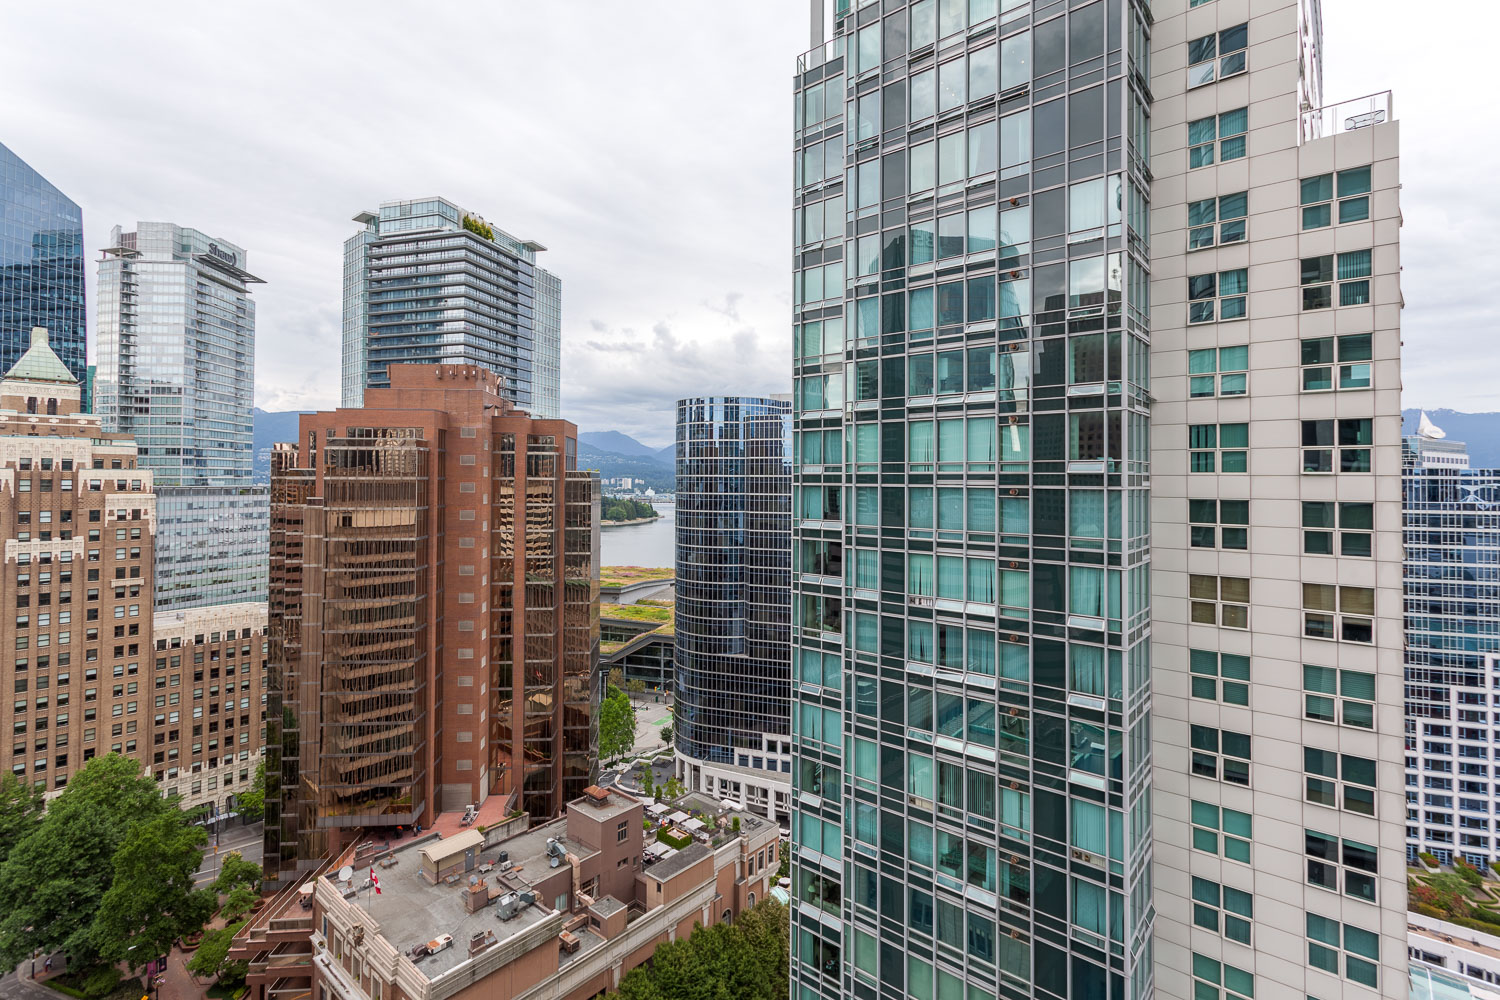 Views Jameson HOUSE NW 838 west hastings street web 45